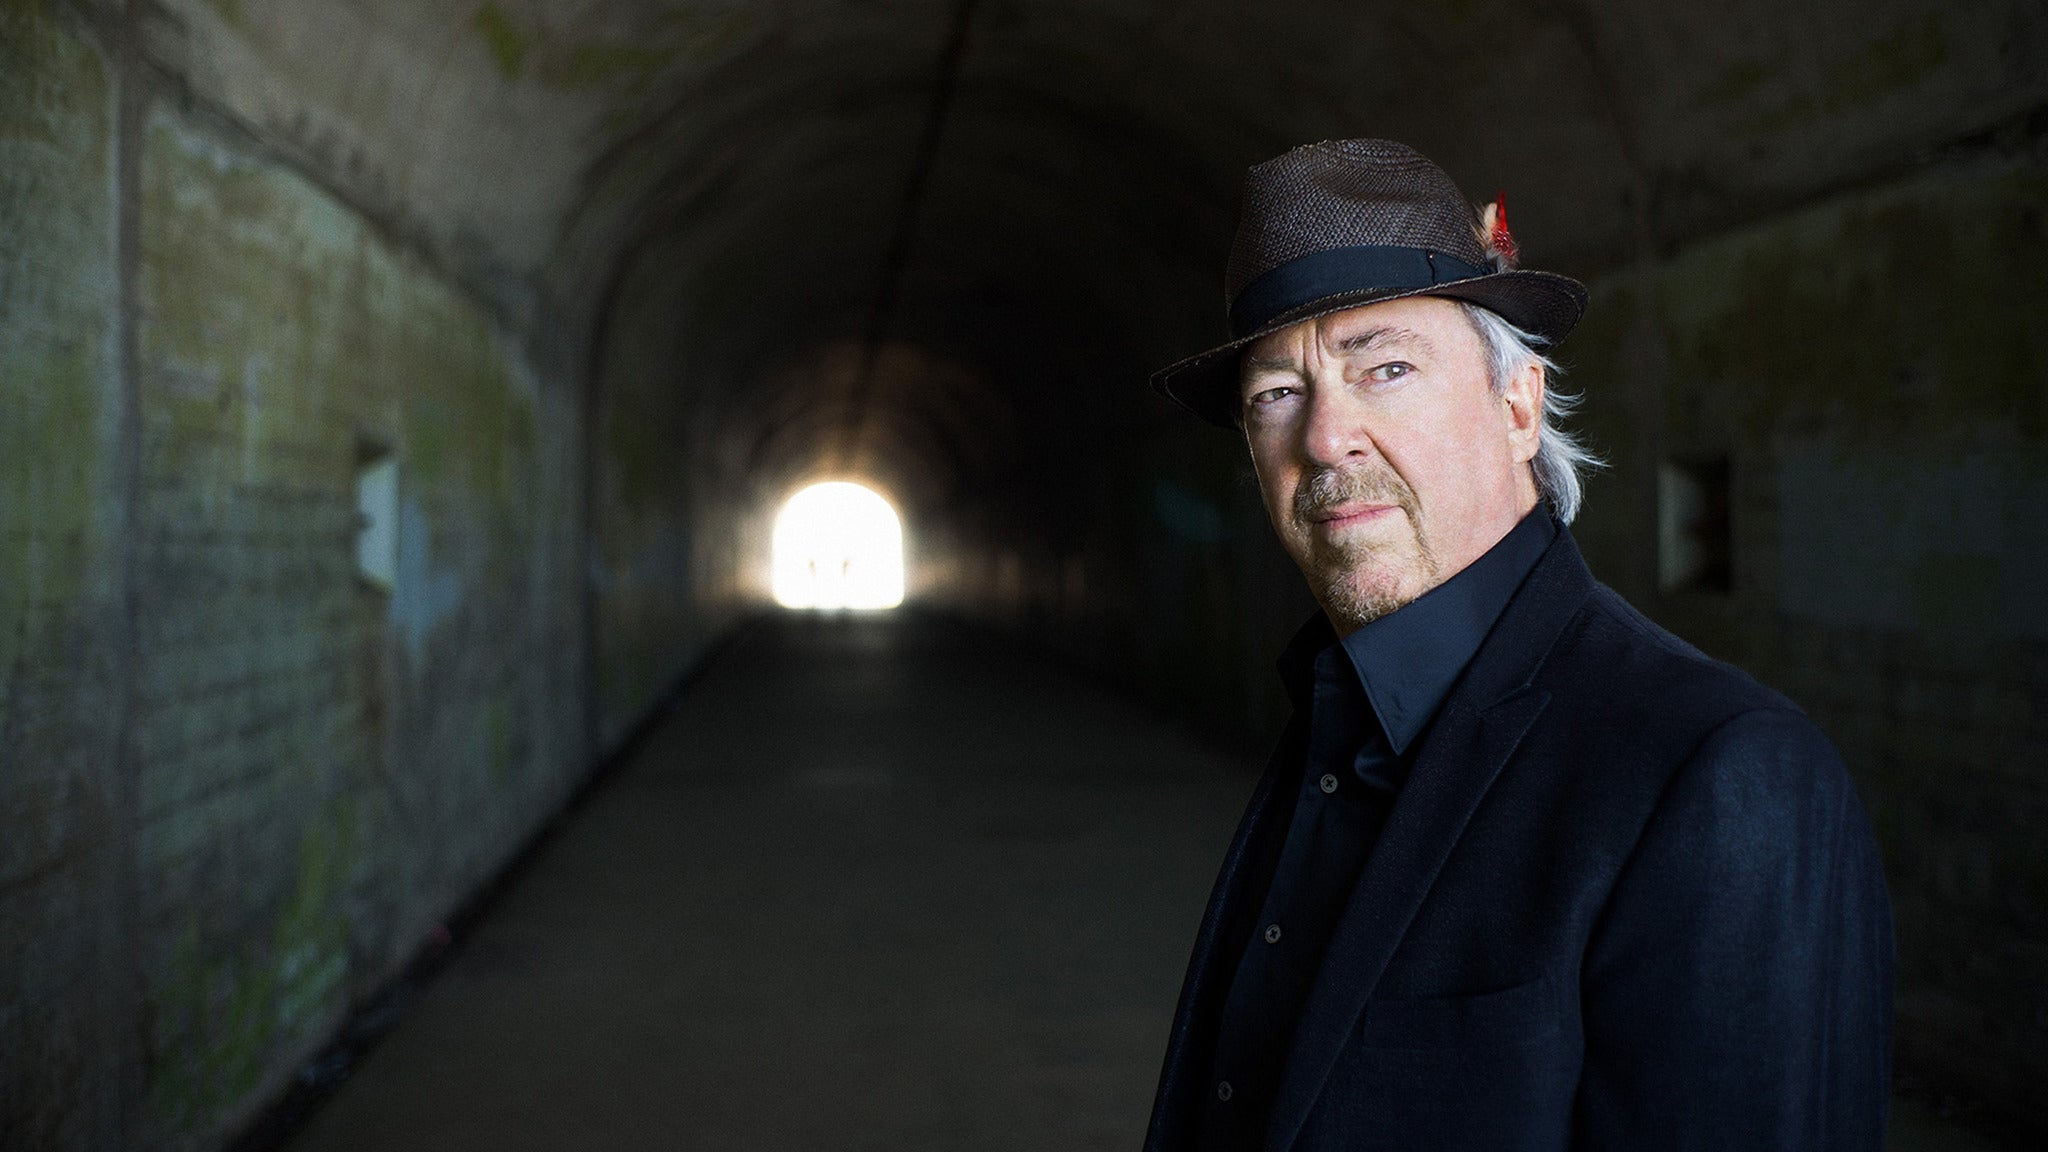 Boz Scaggs at Pechanga Resort and Casino